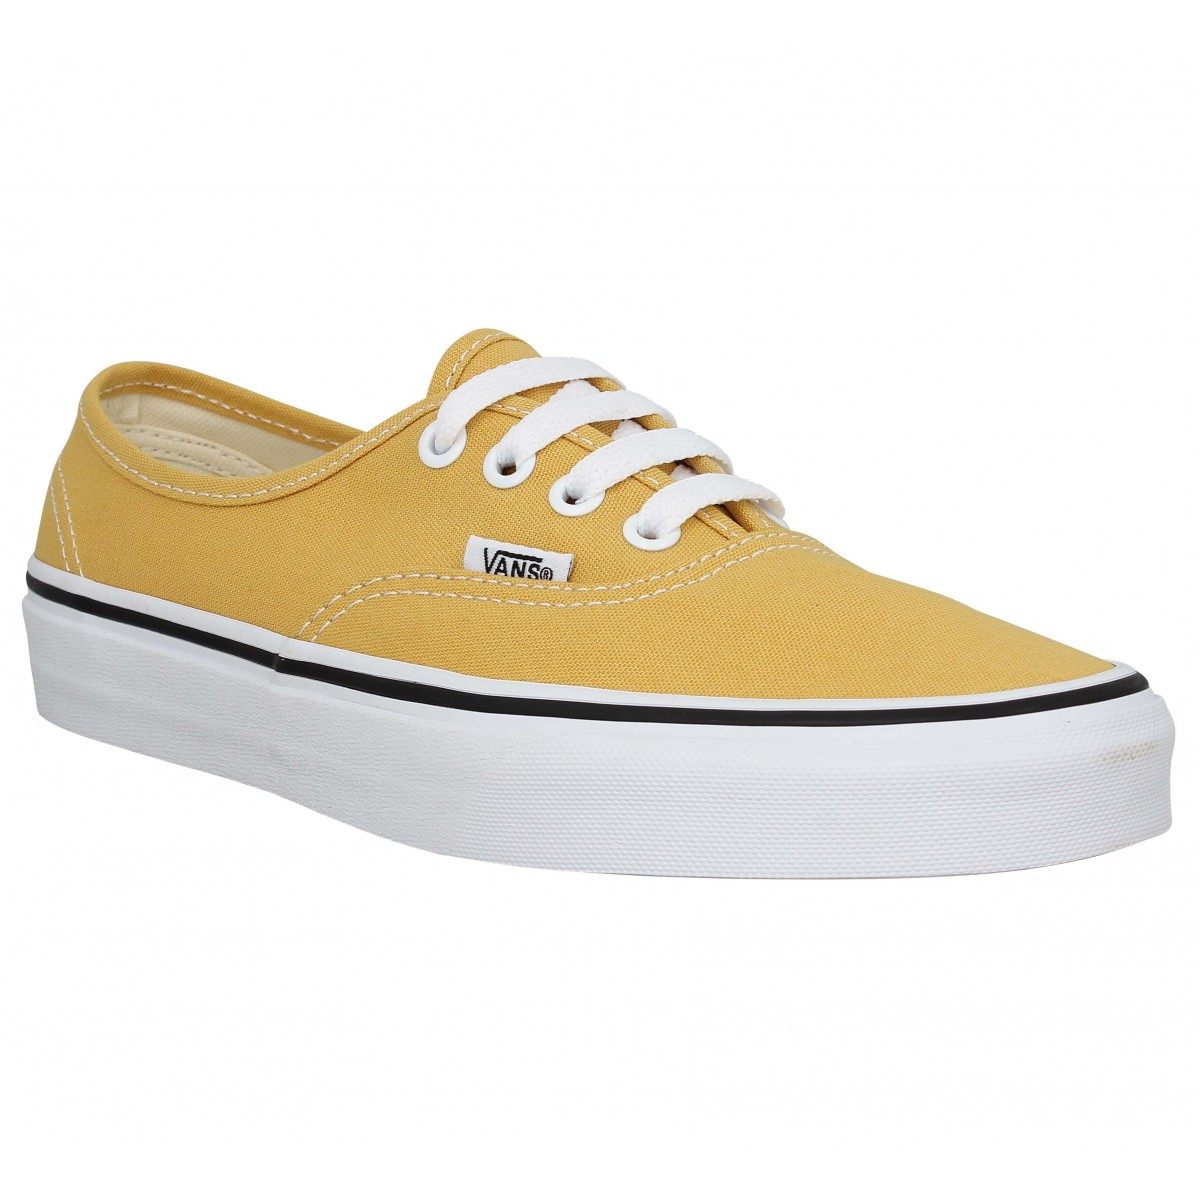 Baskets VANS Authentic toile Ocre